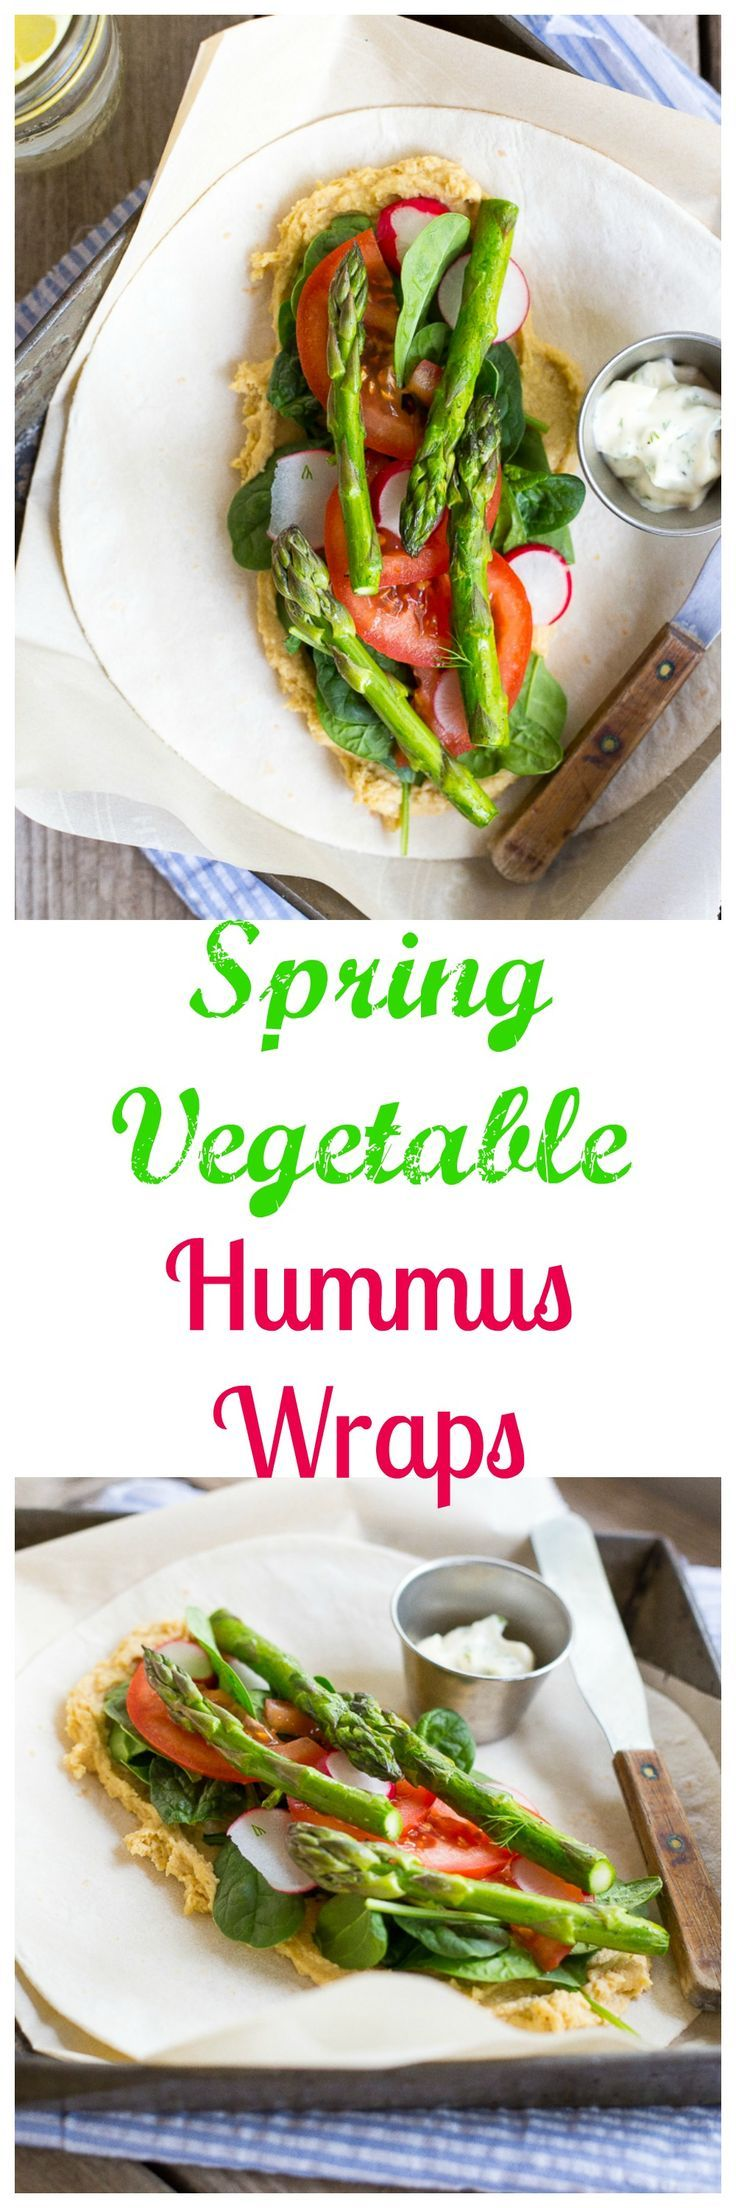 These Spring Vegetable Hummus Wraps with Herbed Mayo are so flavorful and delicious!  Perfect for a quick and easy lunch or dinner!